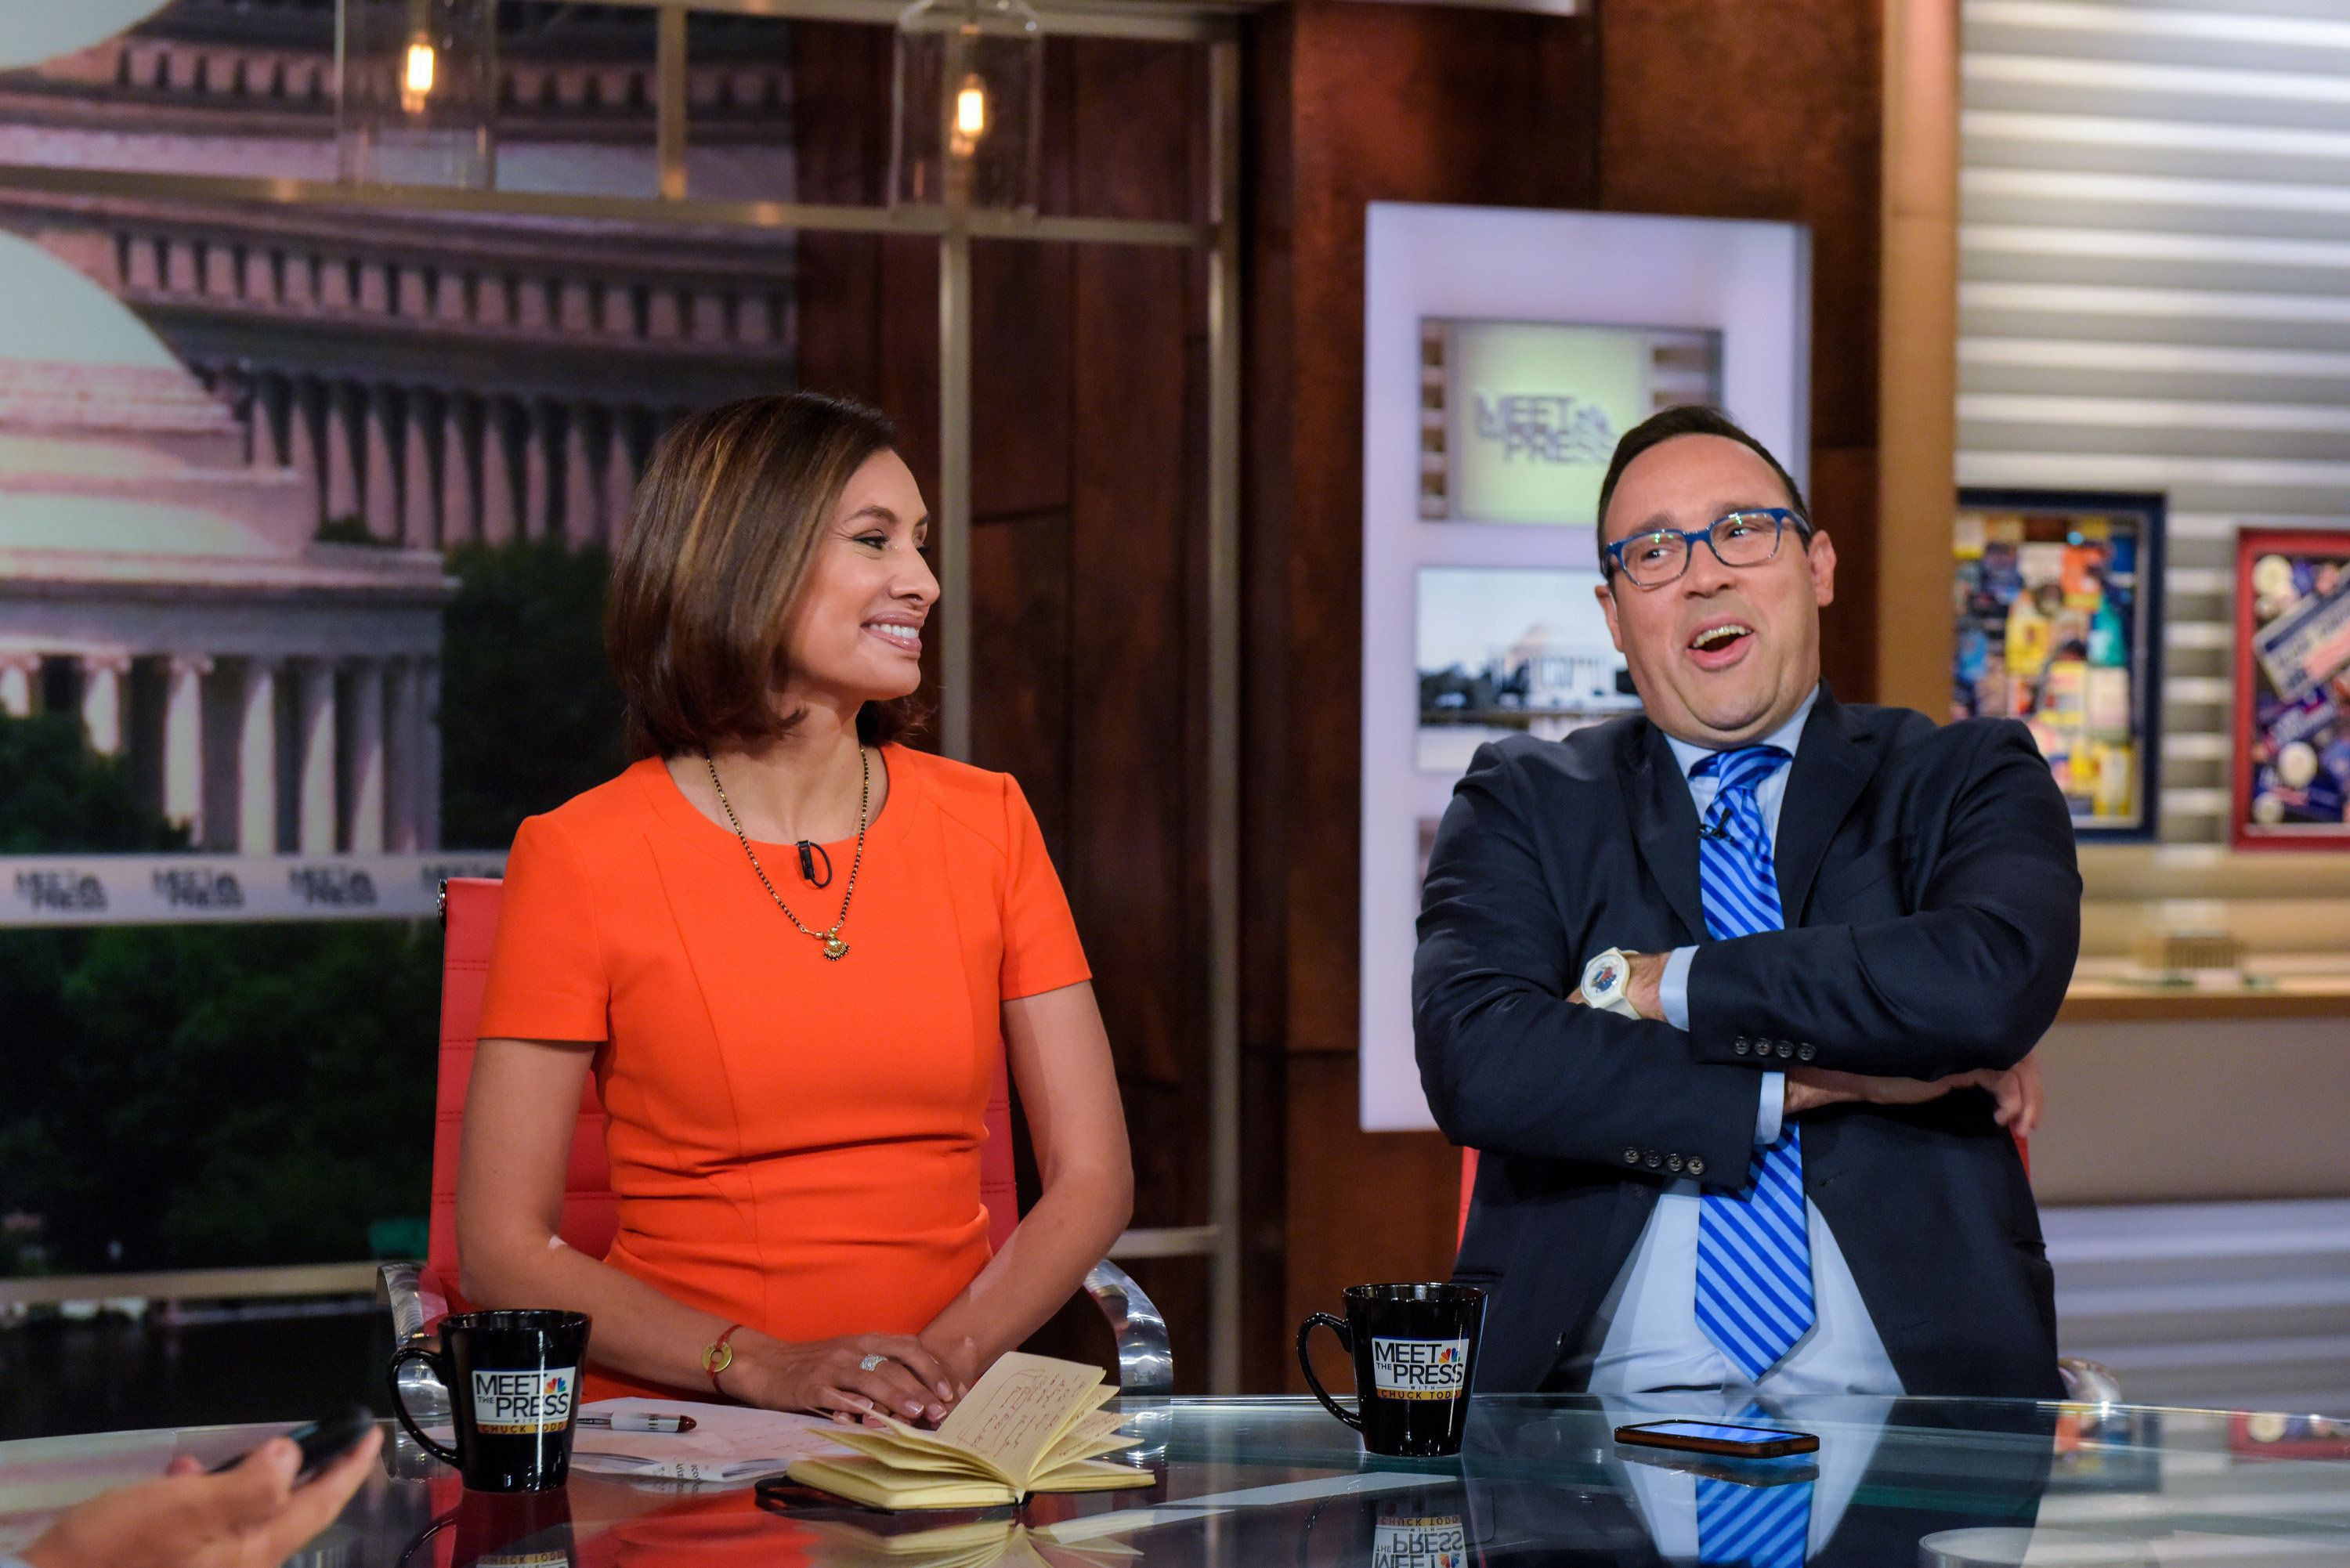 MEET THE PRESS -- Pictured: (l-r) ? Maria Teresa Kumar, President & CEO, VotoLatino, left, and Chris Cillizza, Political Reporter for The Washington Post; MSNBC Political Analyst, right, appear on 'Meet the Press' in Washington, D.C., Sunday September 4, 2016.  (Photo by: William B. Plowman/NBC/NBC NewsWire via Getty Images)